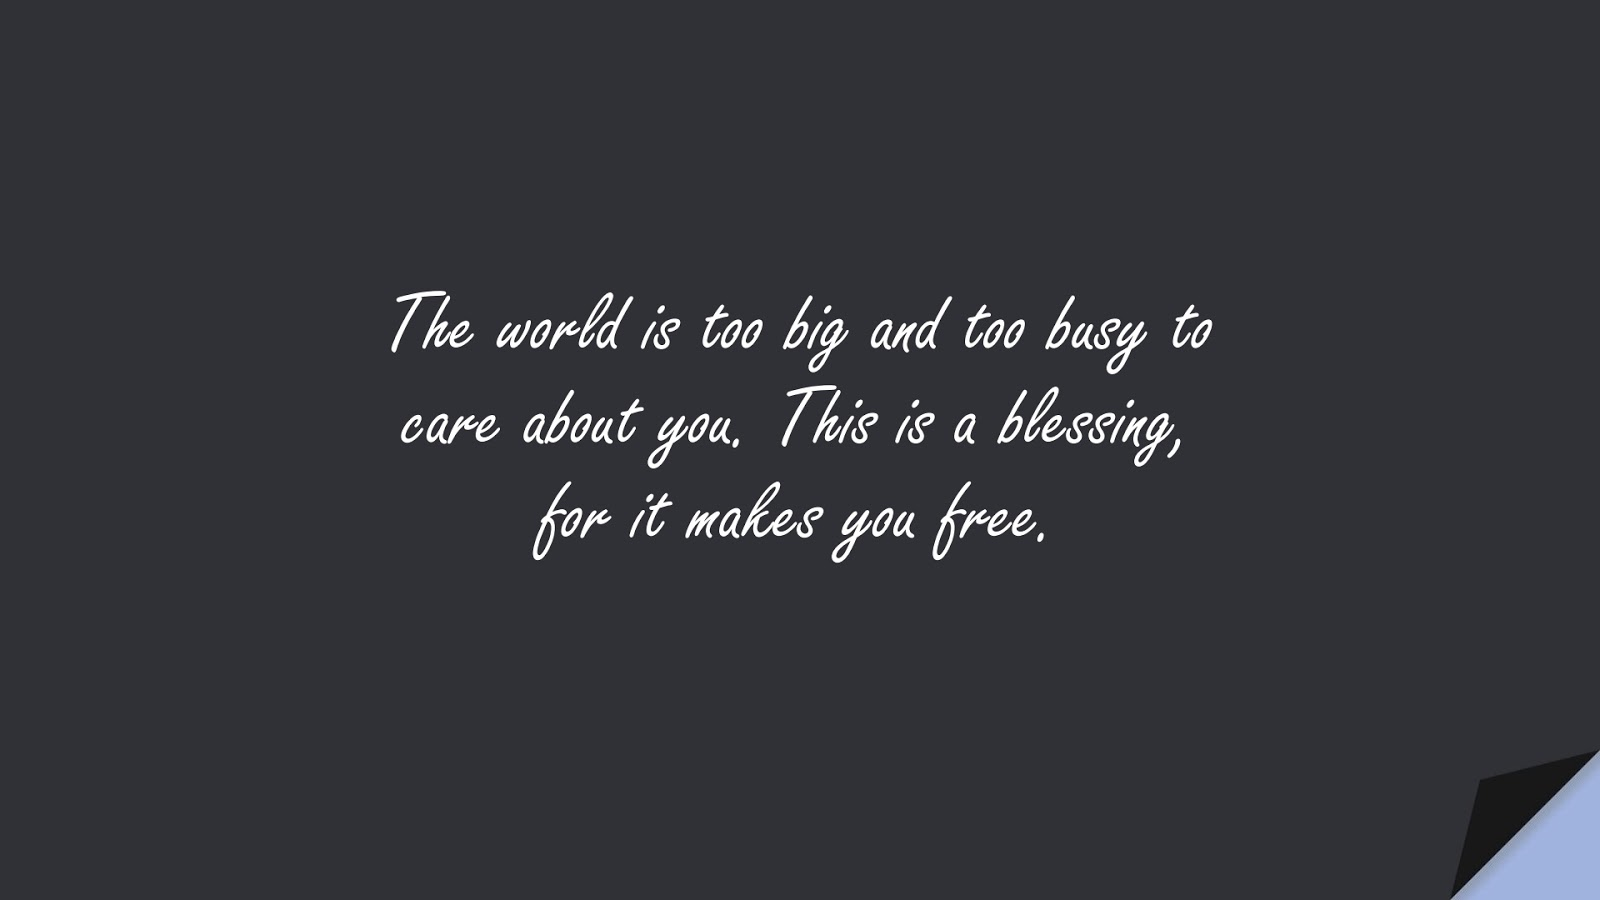 The world is too big and too busy to care about you. This is a blessing, for it makes you free.FALSE